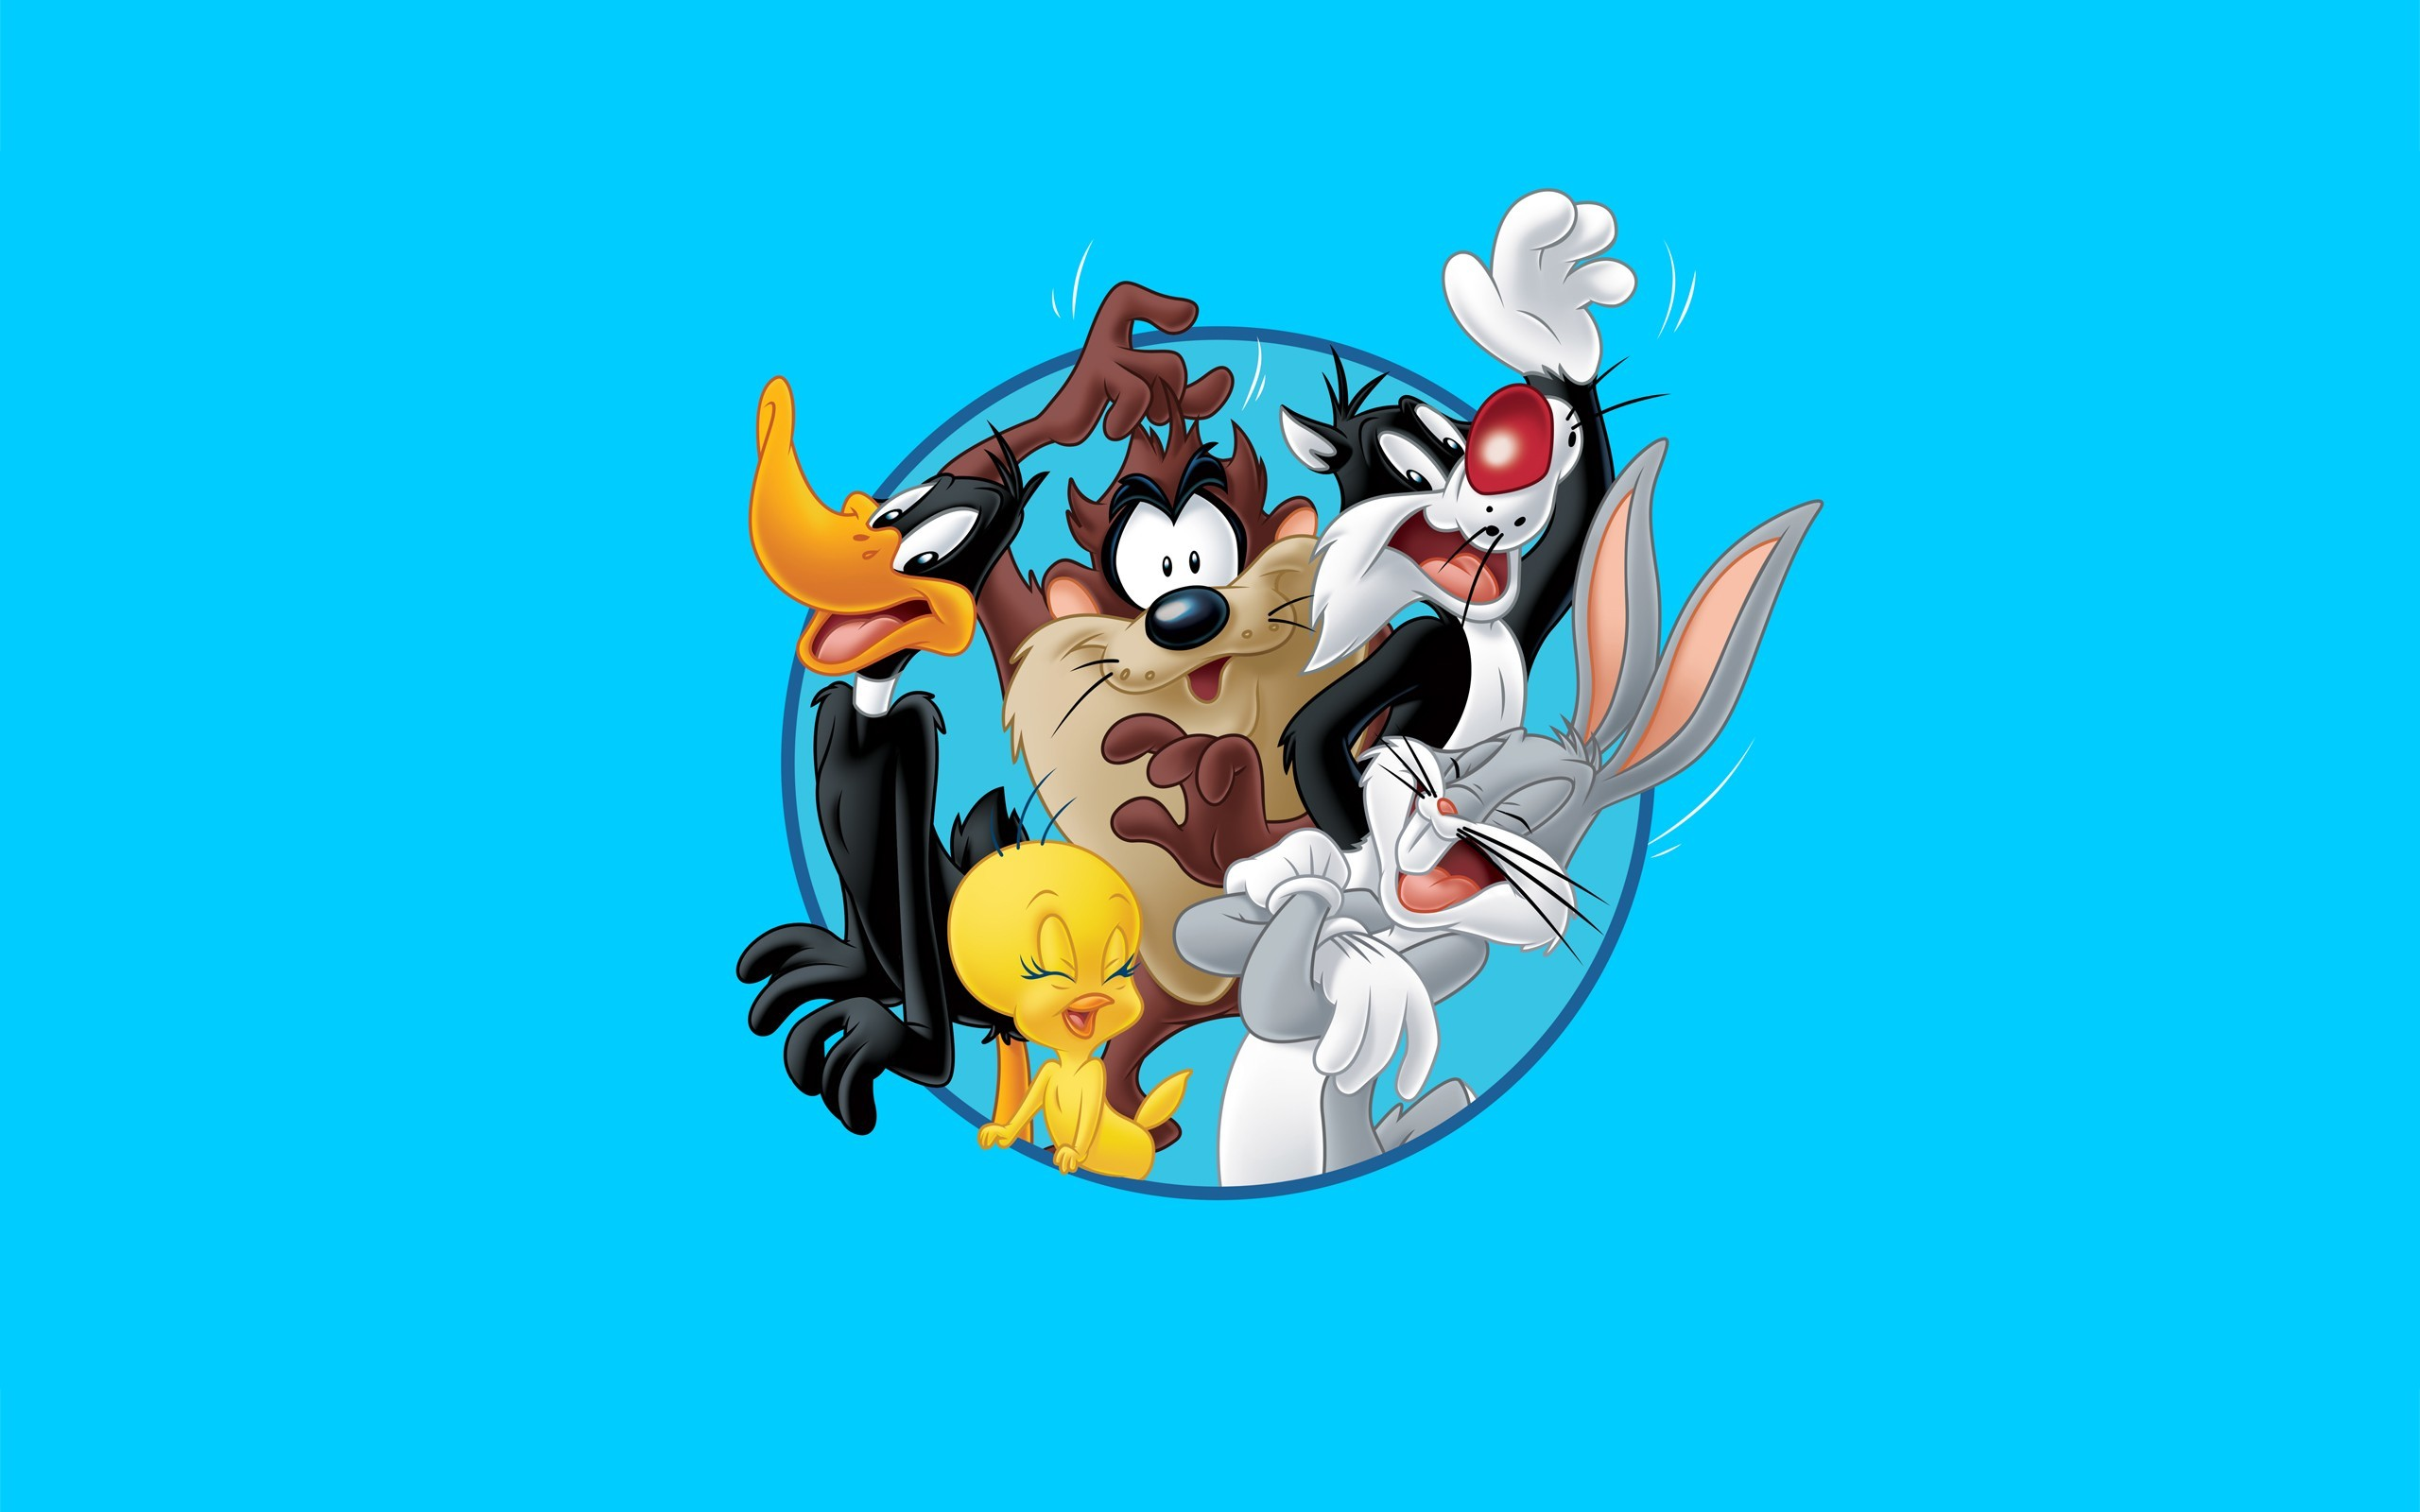 Ewallpaper Hub brings Looney Tunes wallpaper in high resolution for you. We  collect premium quality Looney Tunes wallpapers HD from all over the  internet …